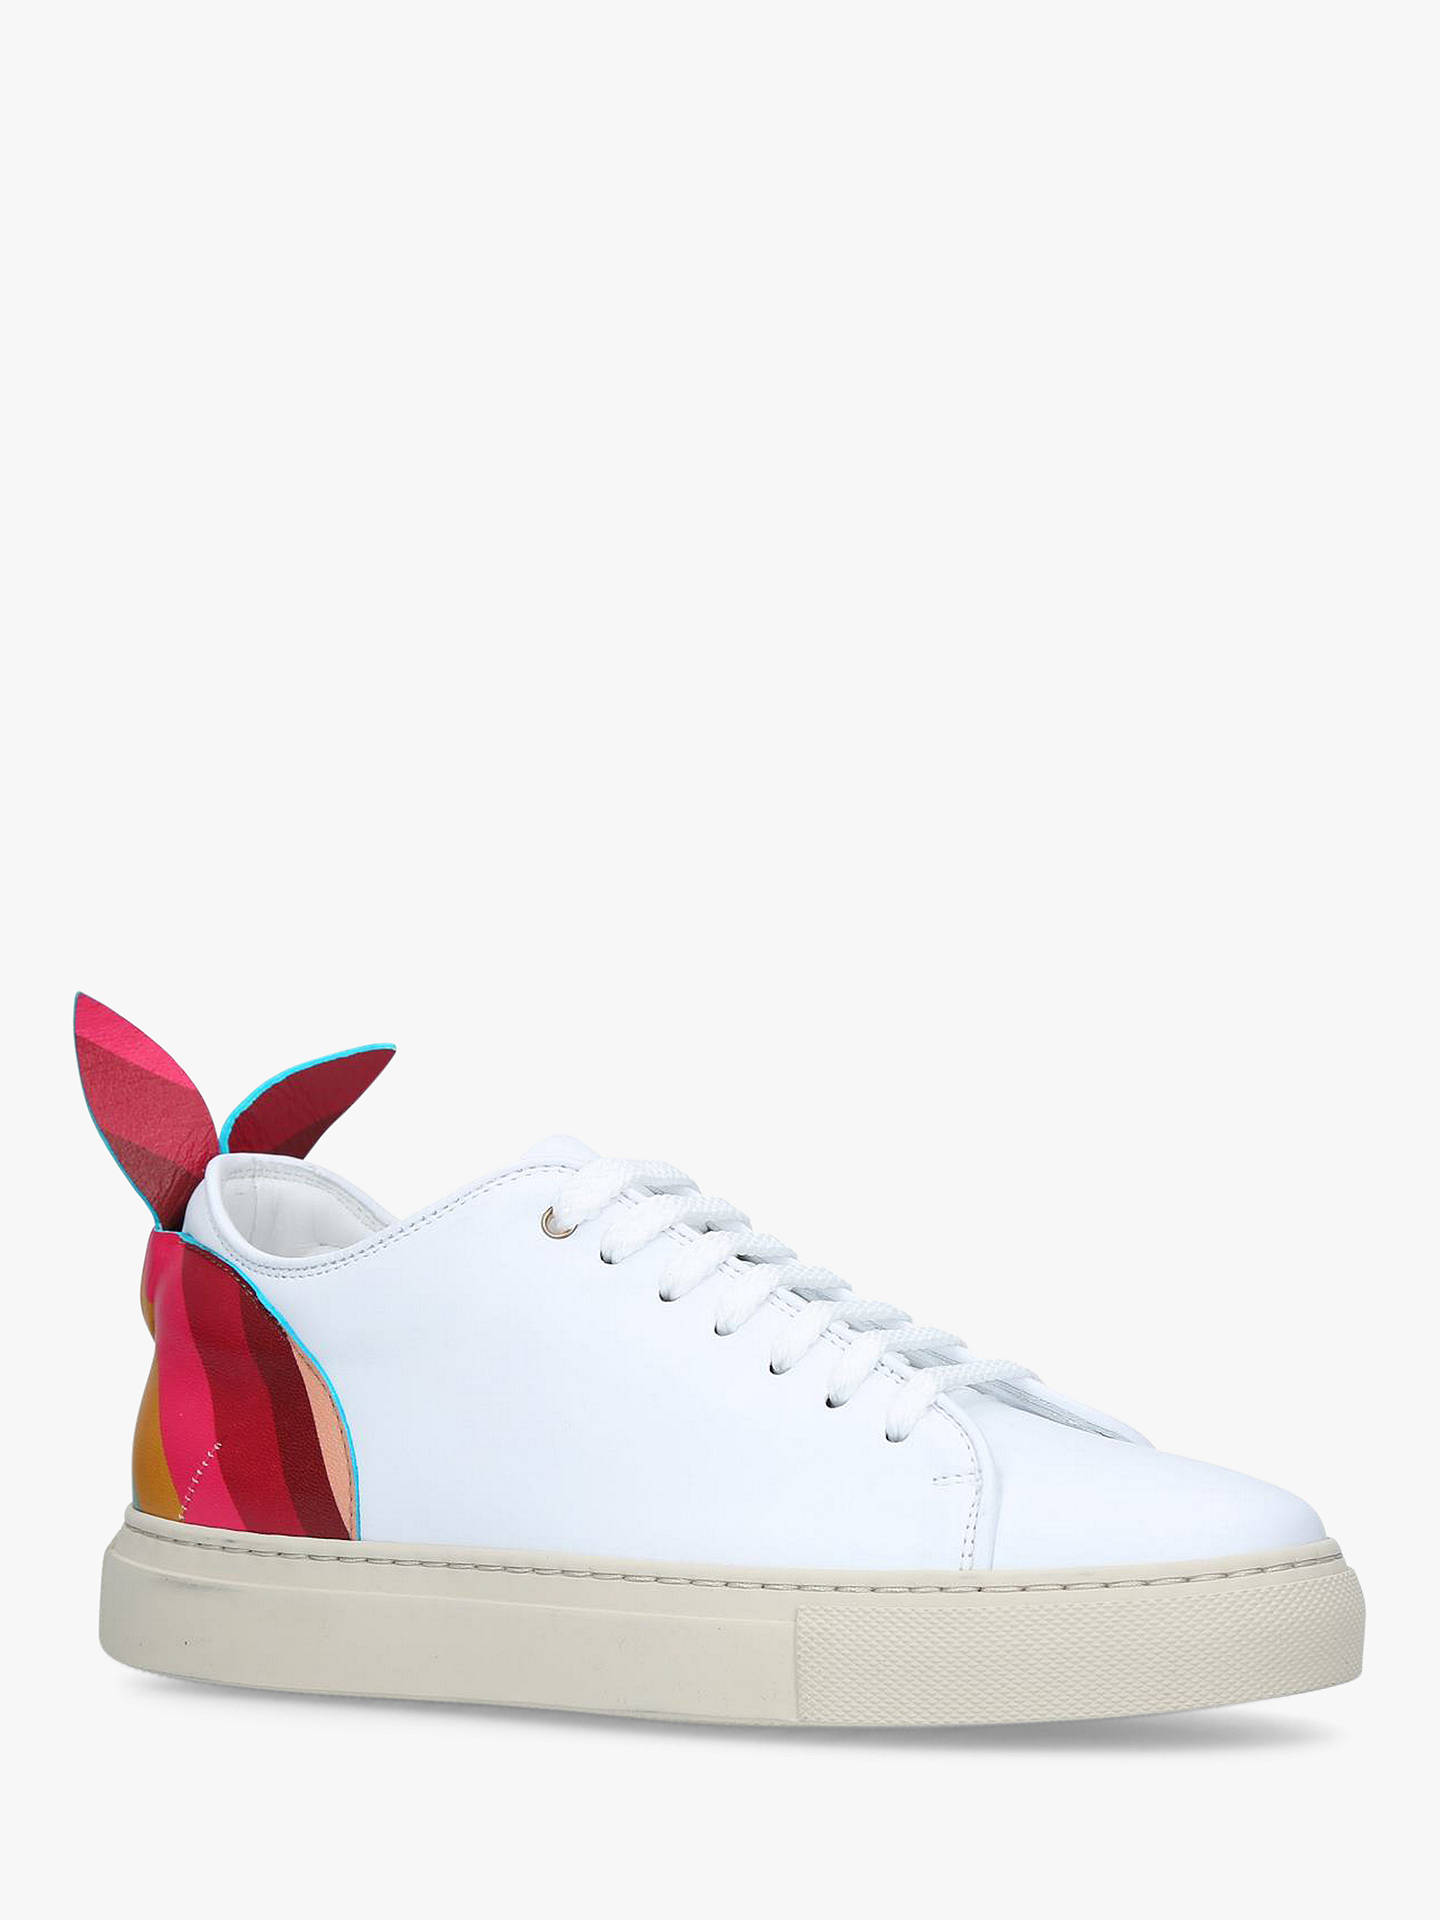 Buy Paul Smith Basso Bunny Lace Up Trainers, White/Multi Leather, 2 Online at johnlewis.com